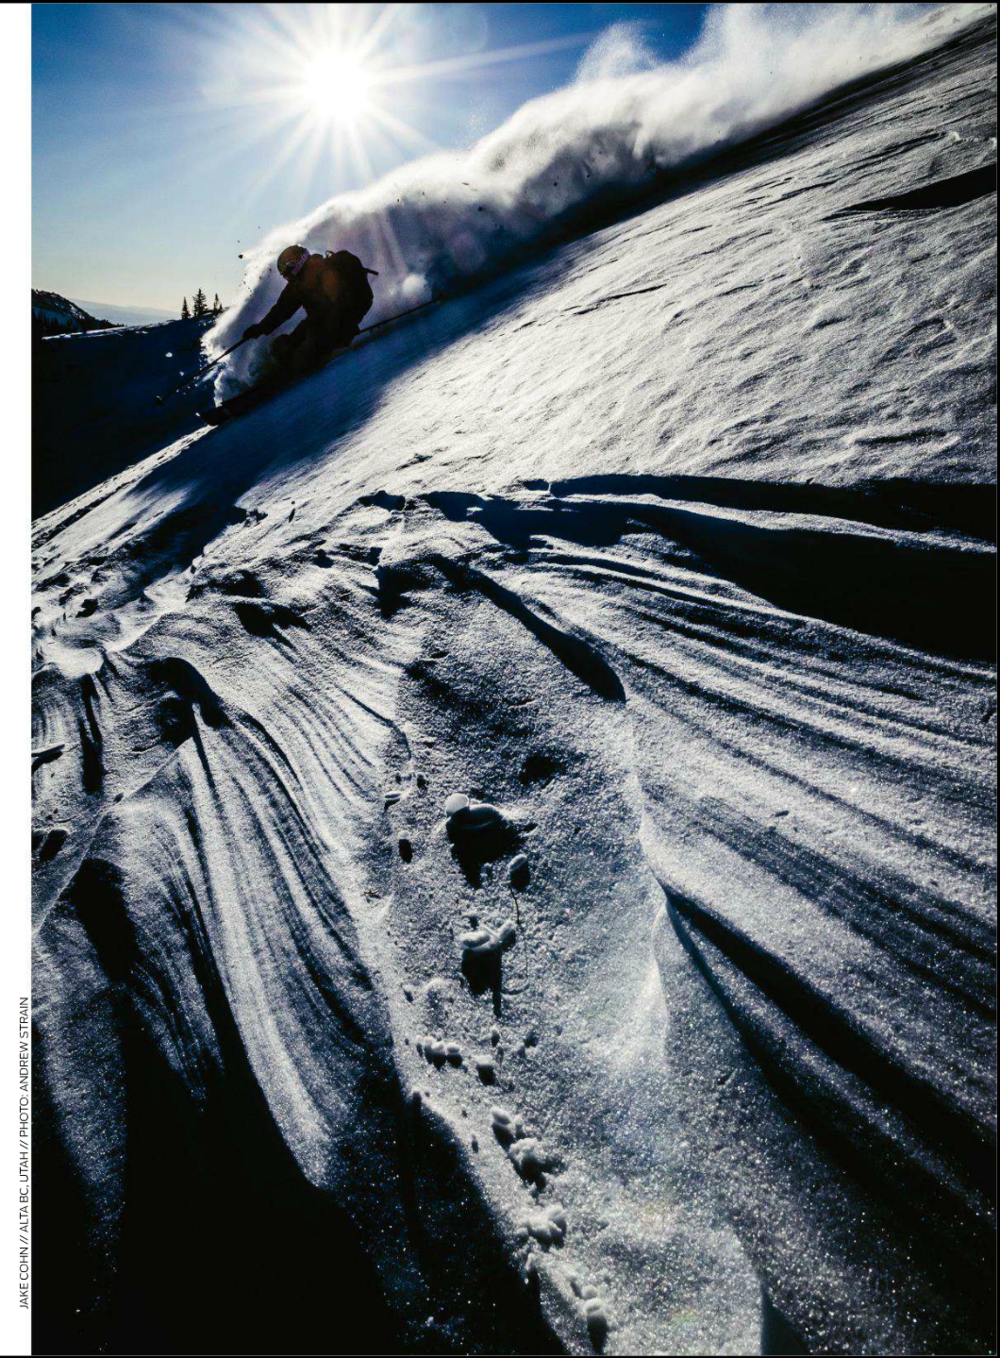 Backcountry Magazine, Feb 2013